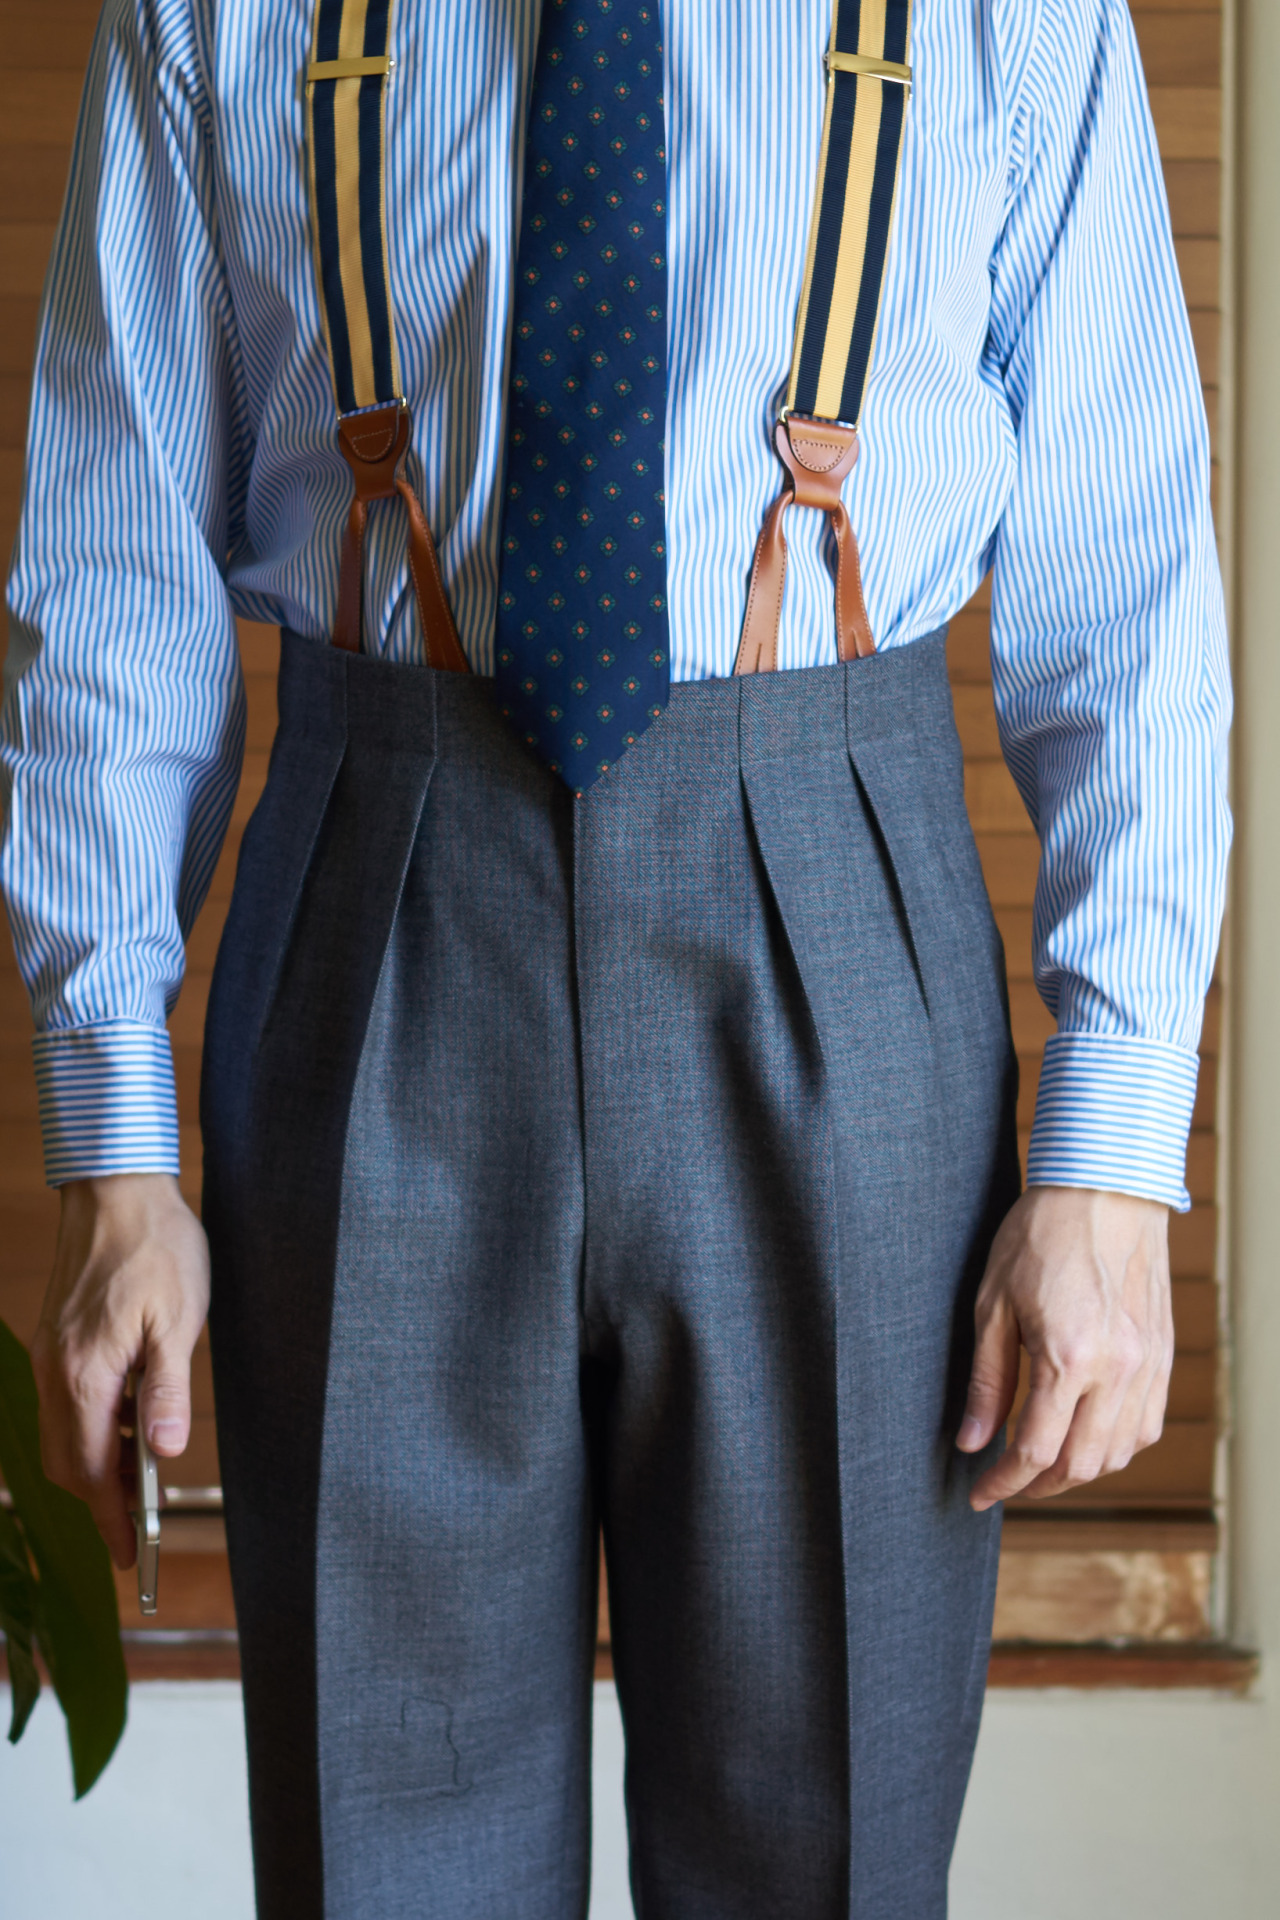 How Pants Should Fit Gentlemans Gazette Tendencies Navy Chinos Short 28 With Two Inward Pleats And A Continuous Waistband